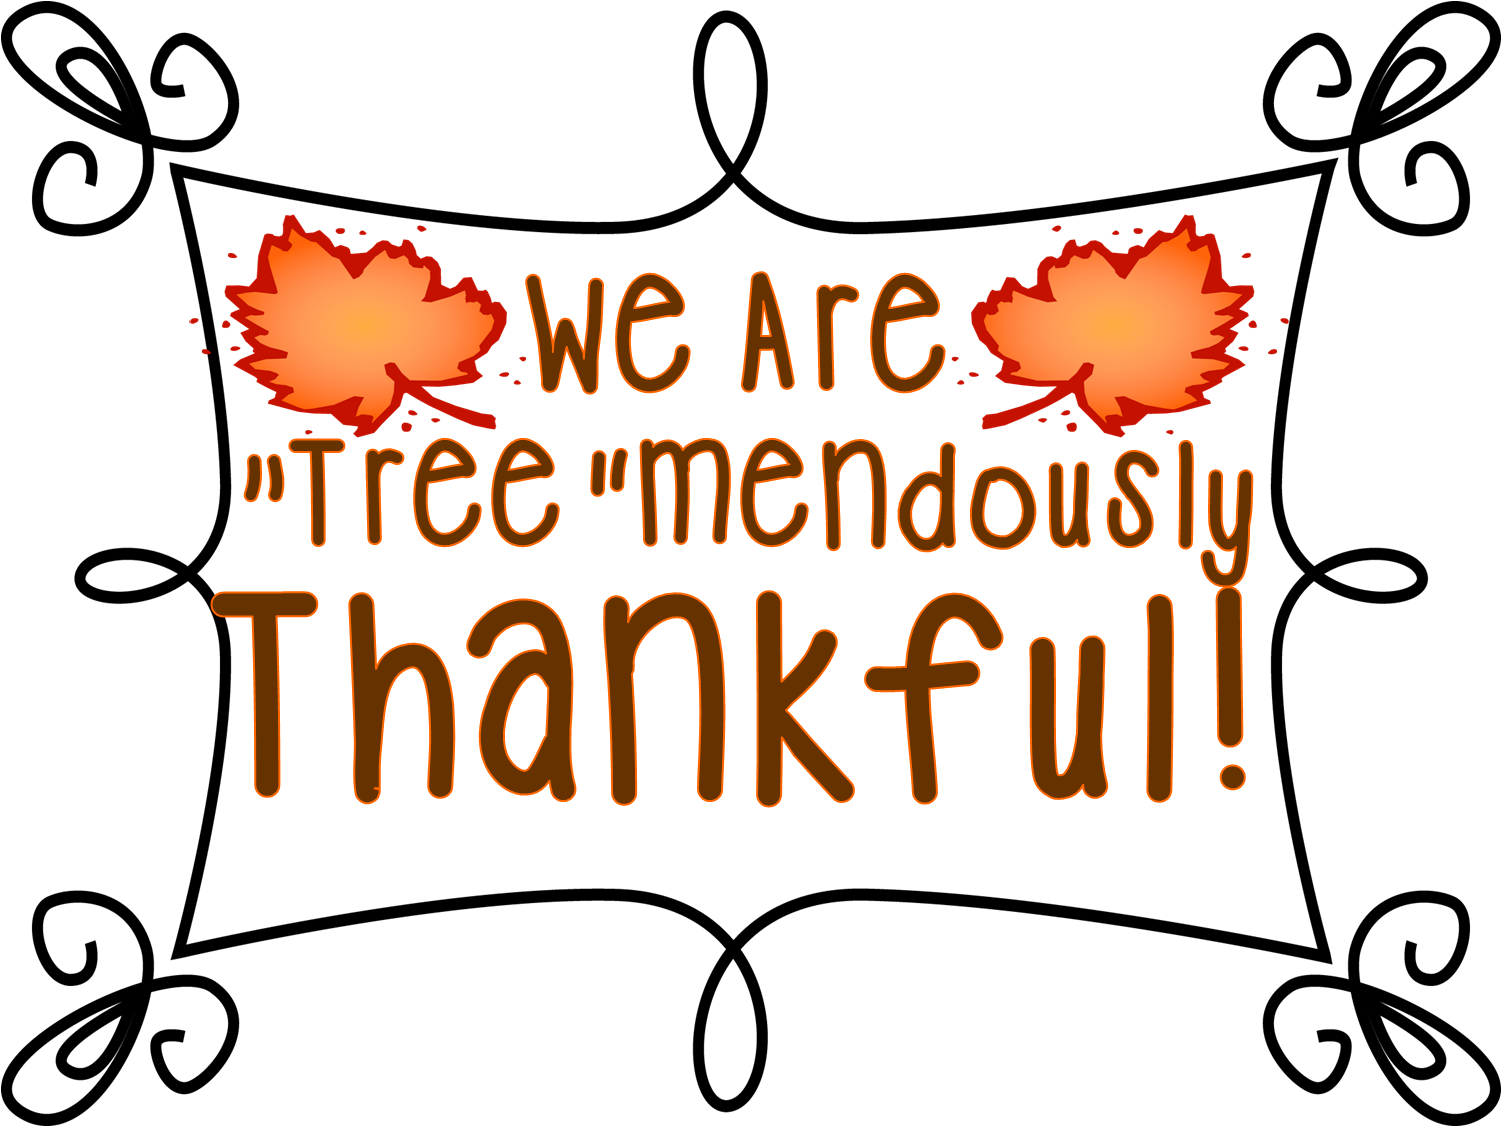 First Grade Wow Tree Mendously Thankful And Samuel